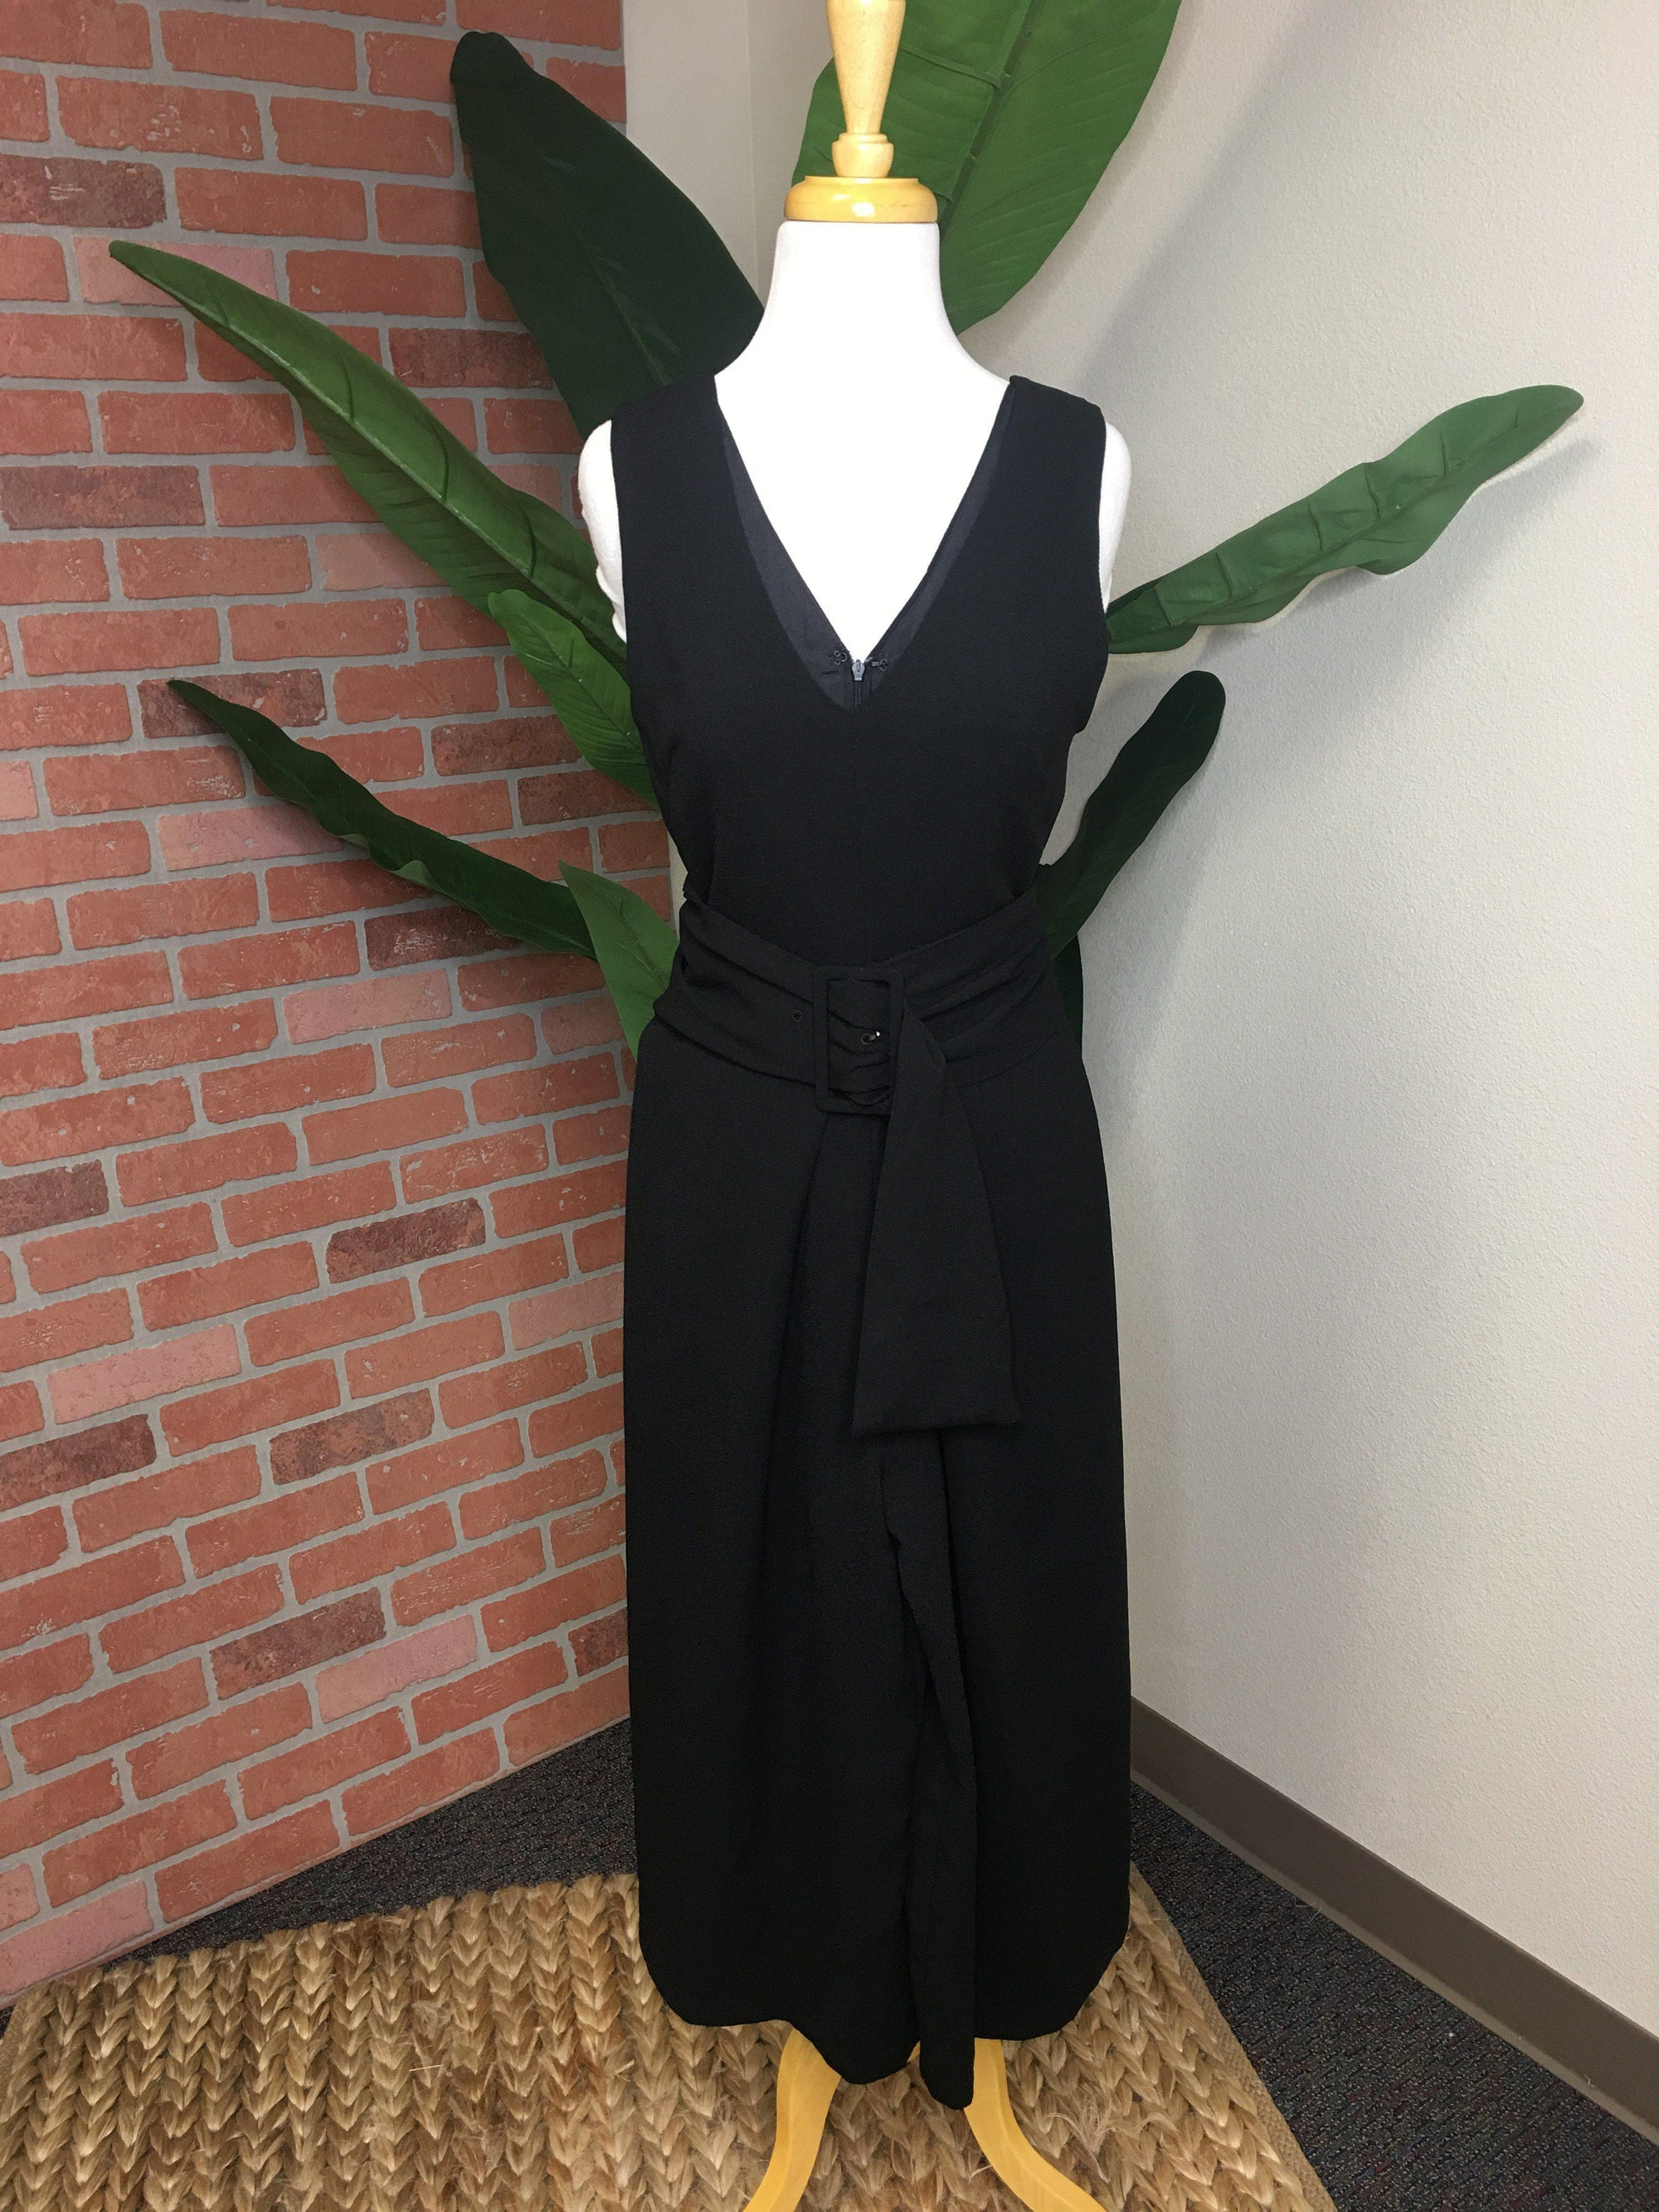 Buckle Up Jumpsuit-Women's SALE-New Arrivals-Runway Seven